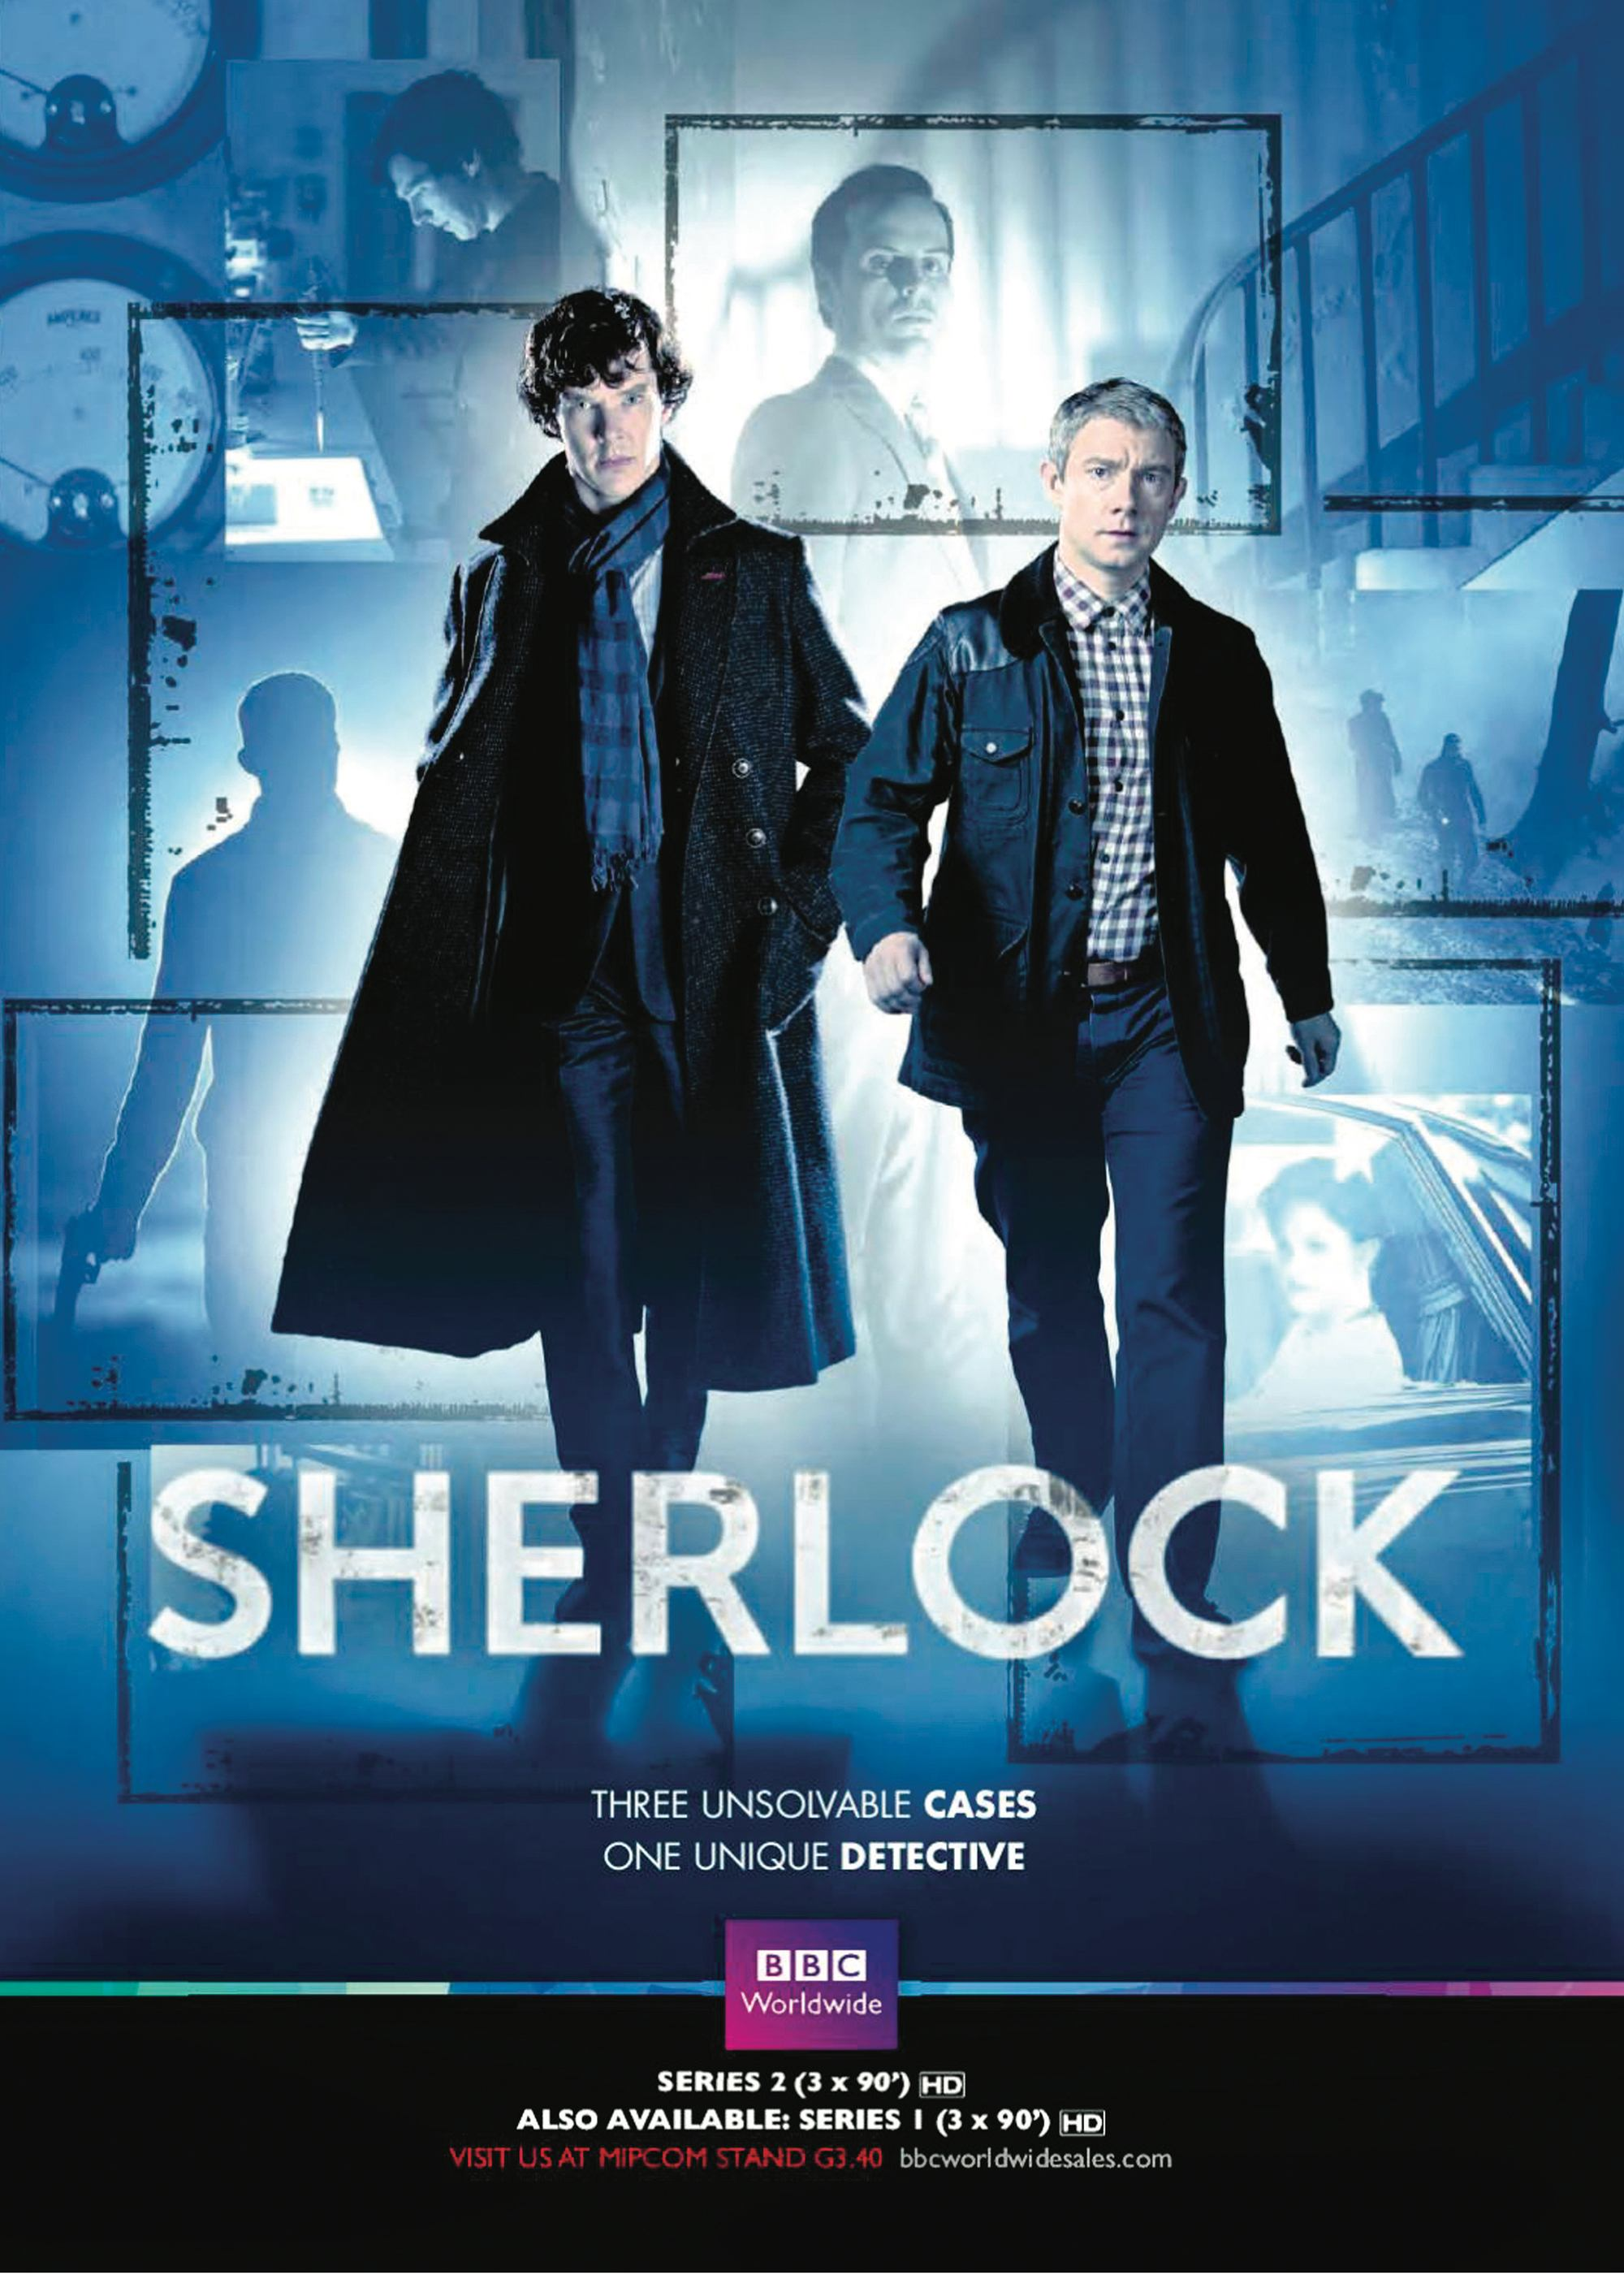 Sherlock, by Mark Gatiss and Steven Moffat.